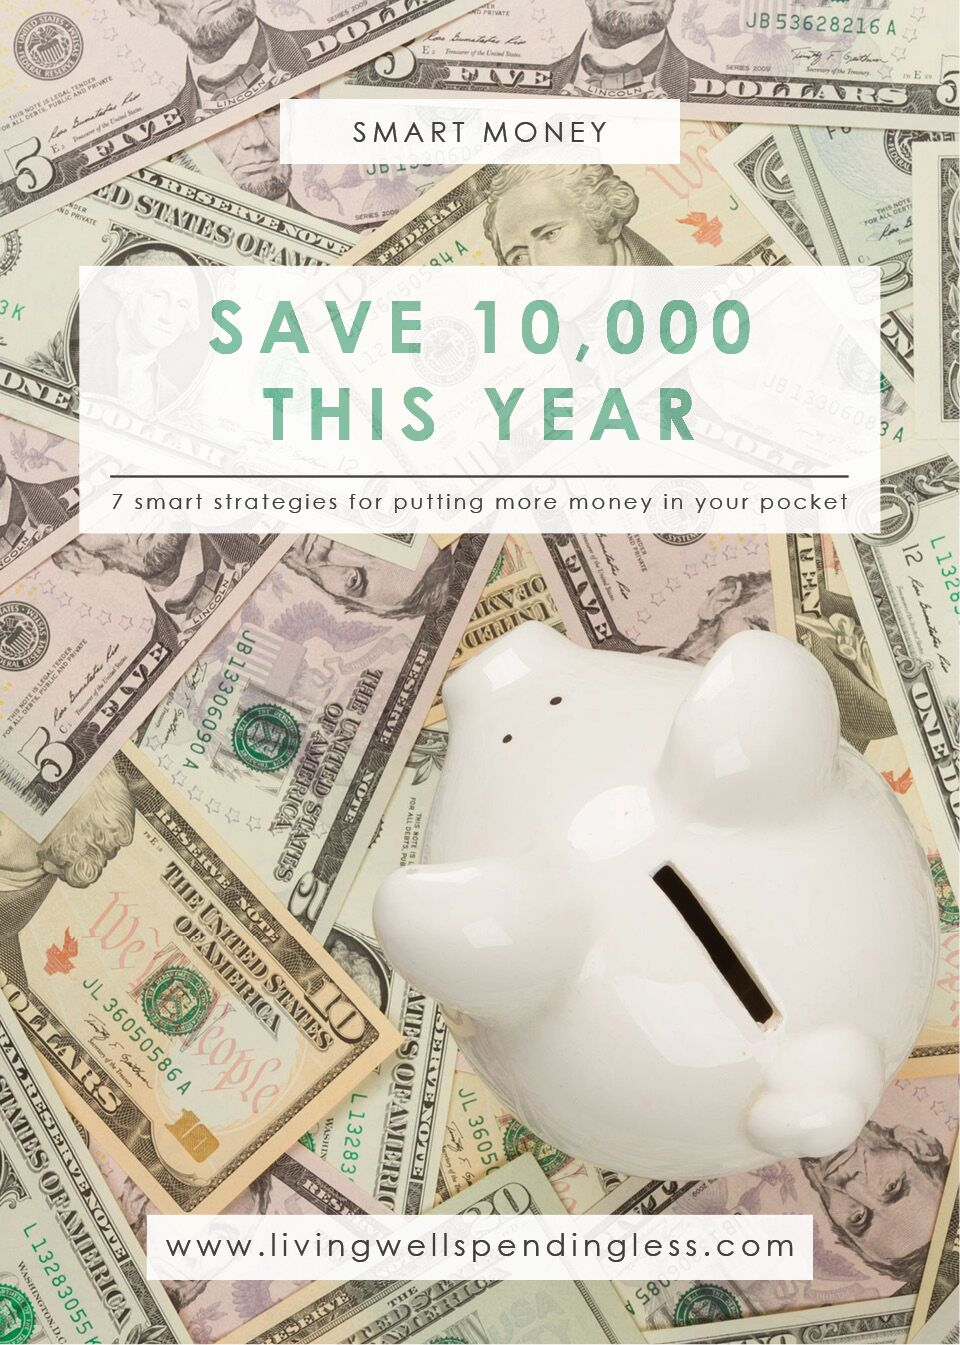 How to Save $10,000 This Year | Save $10,000 | Saving Tips | Hacks on Saving | How to Save | Budget Ideas | Financial Peace | Emergency Fund | Budgeting | Money Advice